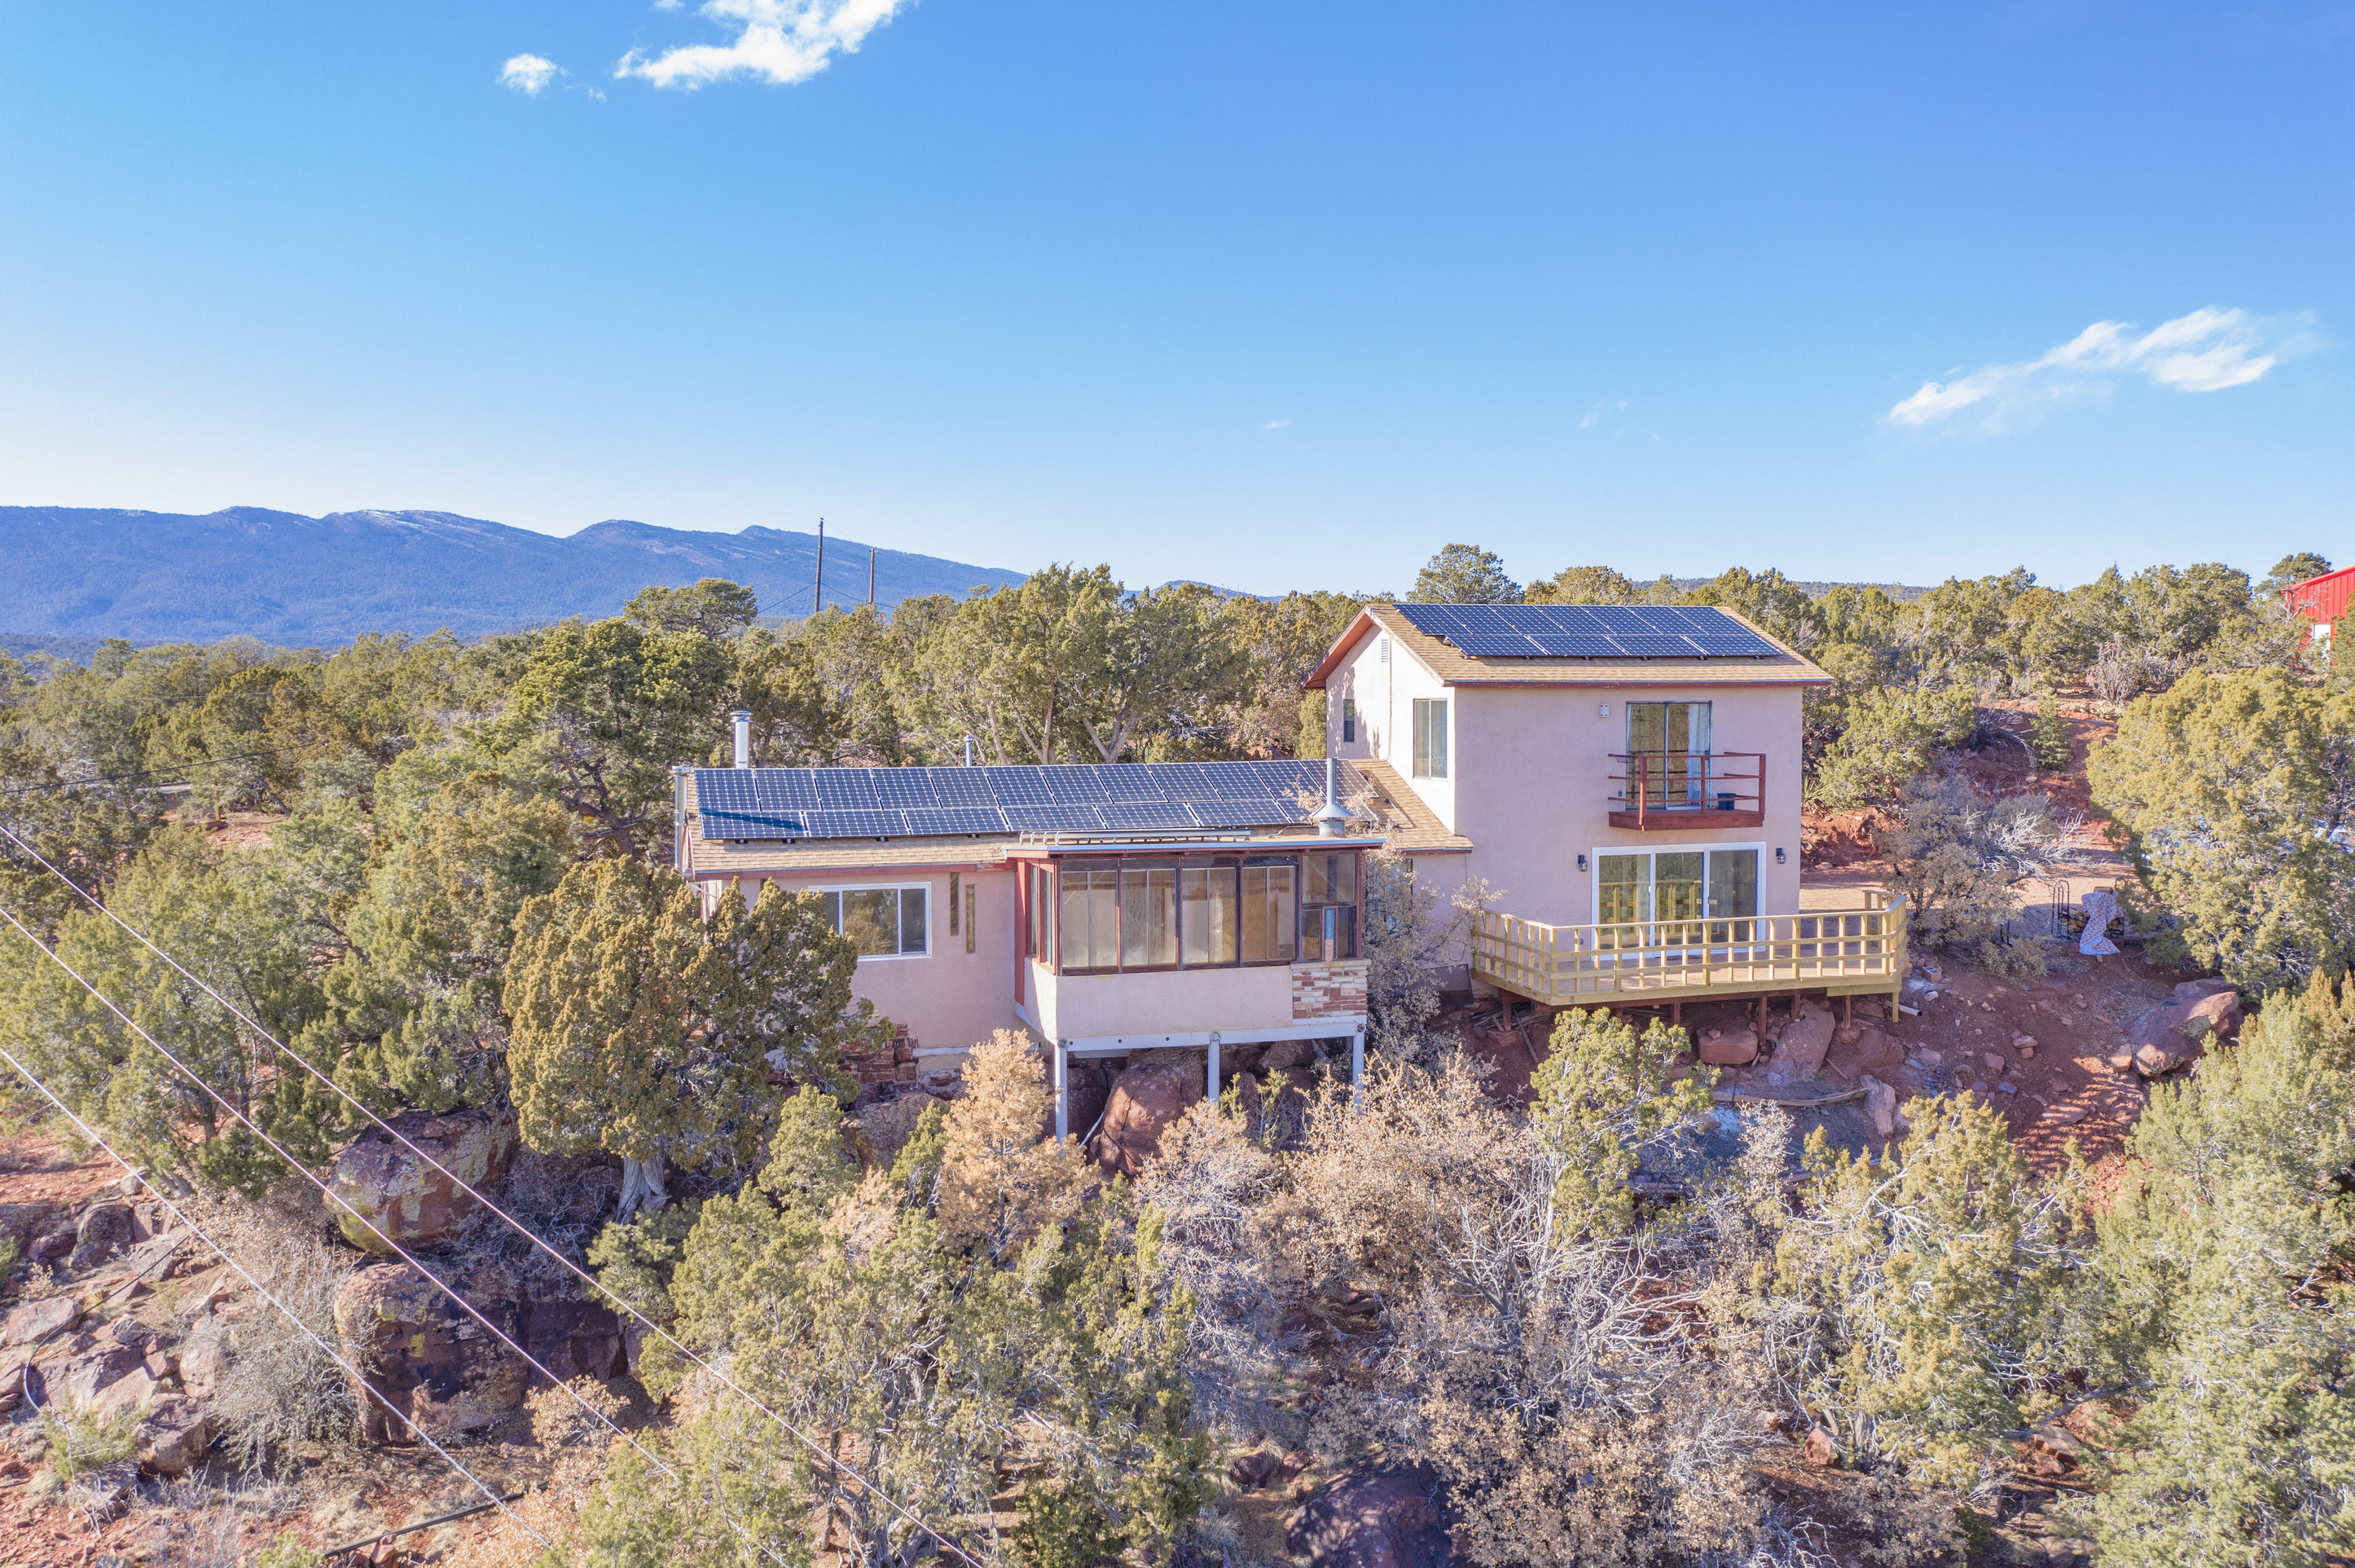 Views, Views Views! and privacy too!2 five acre lots, private well, dead end privacy. Brand new deck, 35 solar panels that supplement the electric and feed back to PNM. Wood stove for those cold winter nights. Updated, remodeled bathrooms, new carpet., new water heater. New 30x40 metal shop w/ 15 FT ceiling